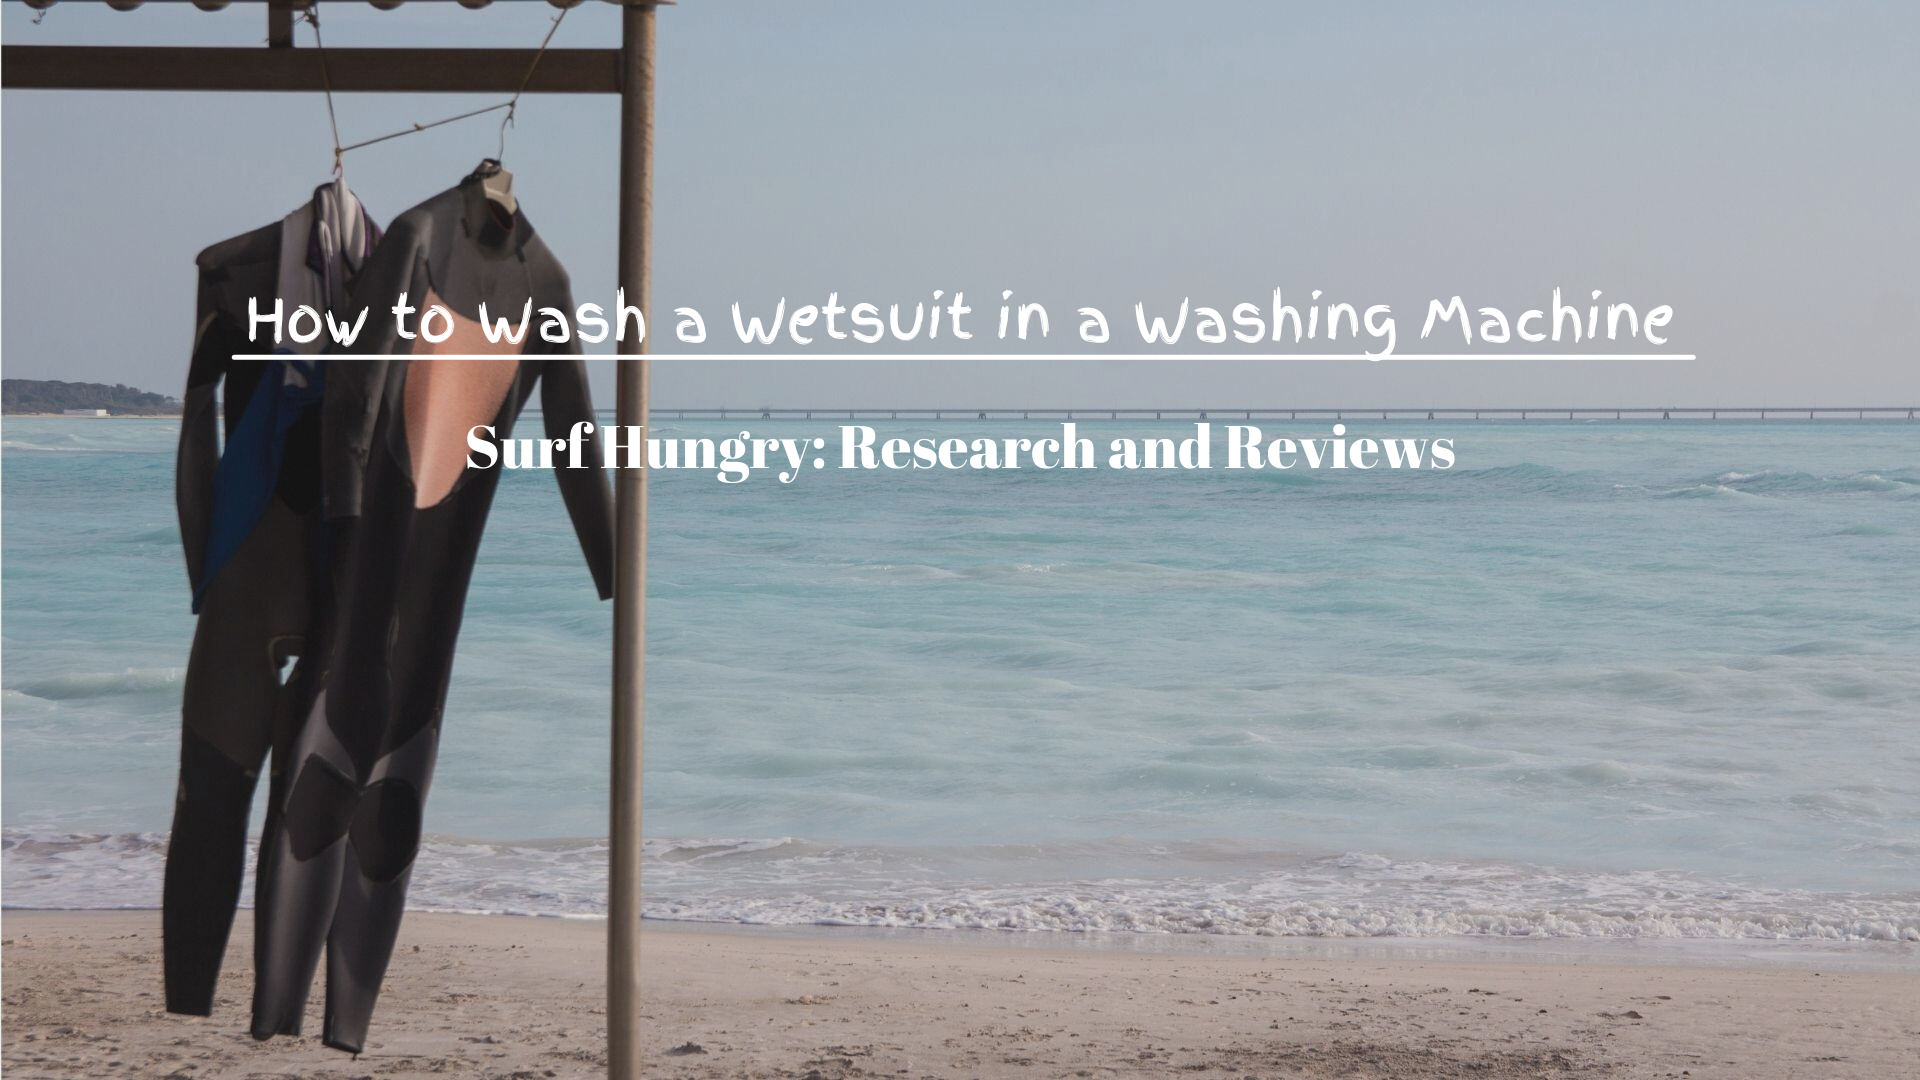 How to Wash a Wetsuit in a Washing Machine